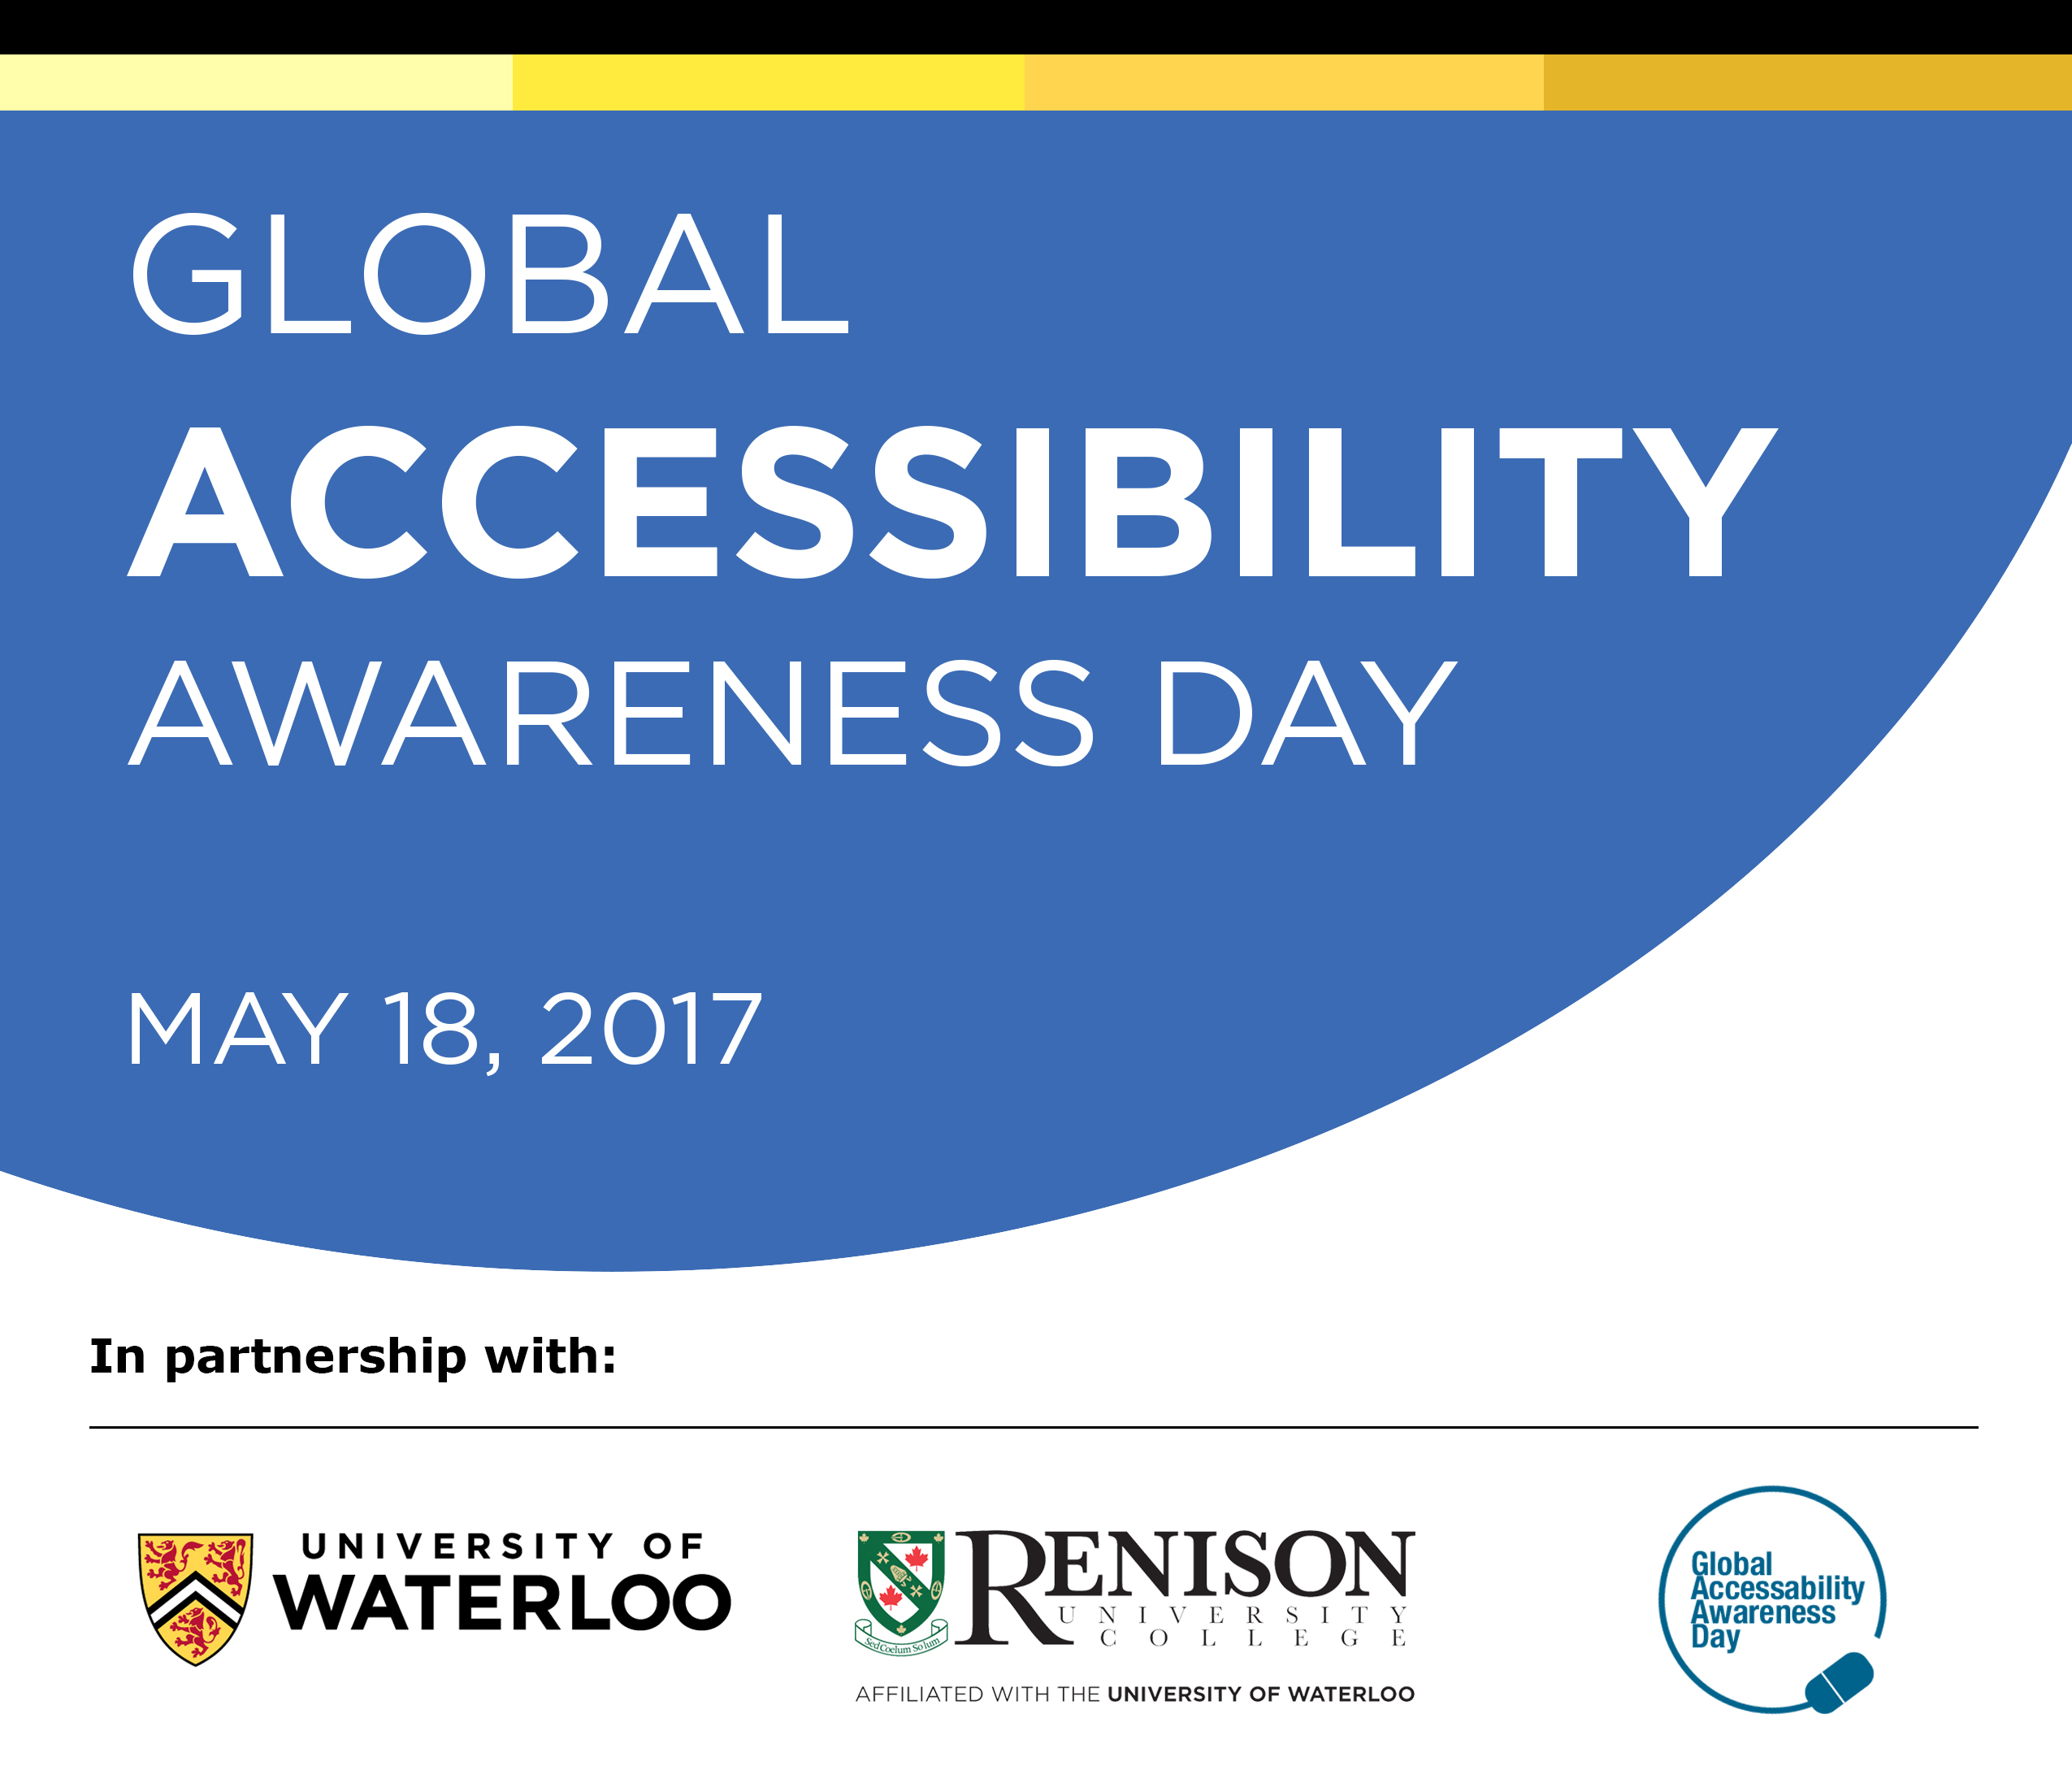 Global Accessibility Awareness Day, May 18, 2017